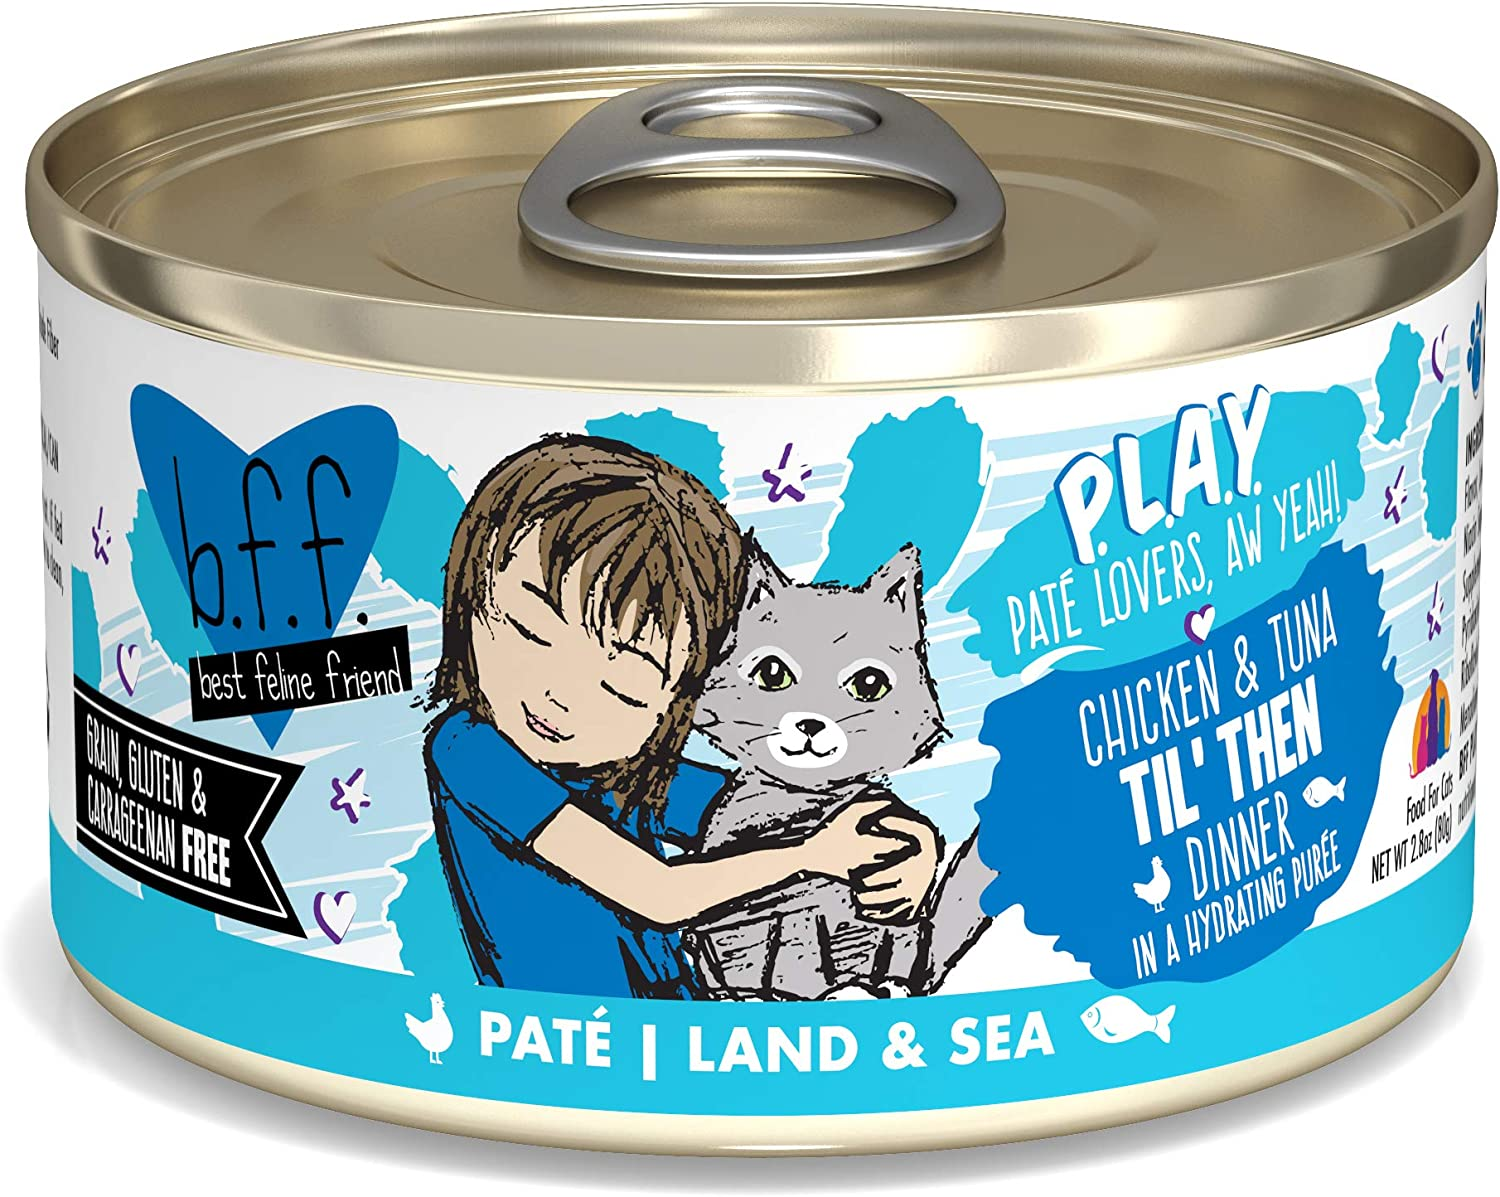 B.F.F. Play - Best Feline Friend Pate Lovers aw Yeah! Grain-Free Natural Wet Cat Food Cans, Land & Sea Pate Recipes